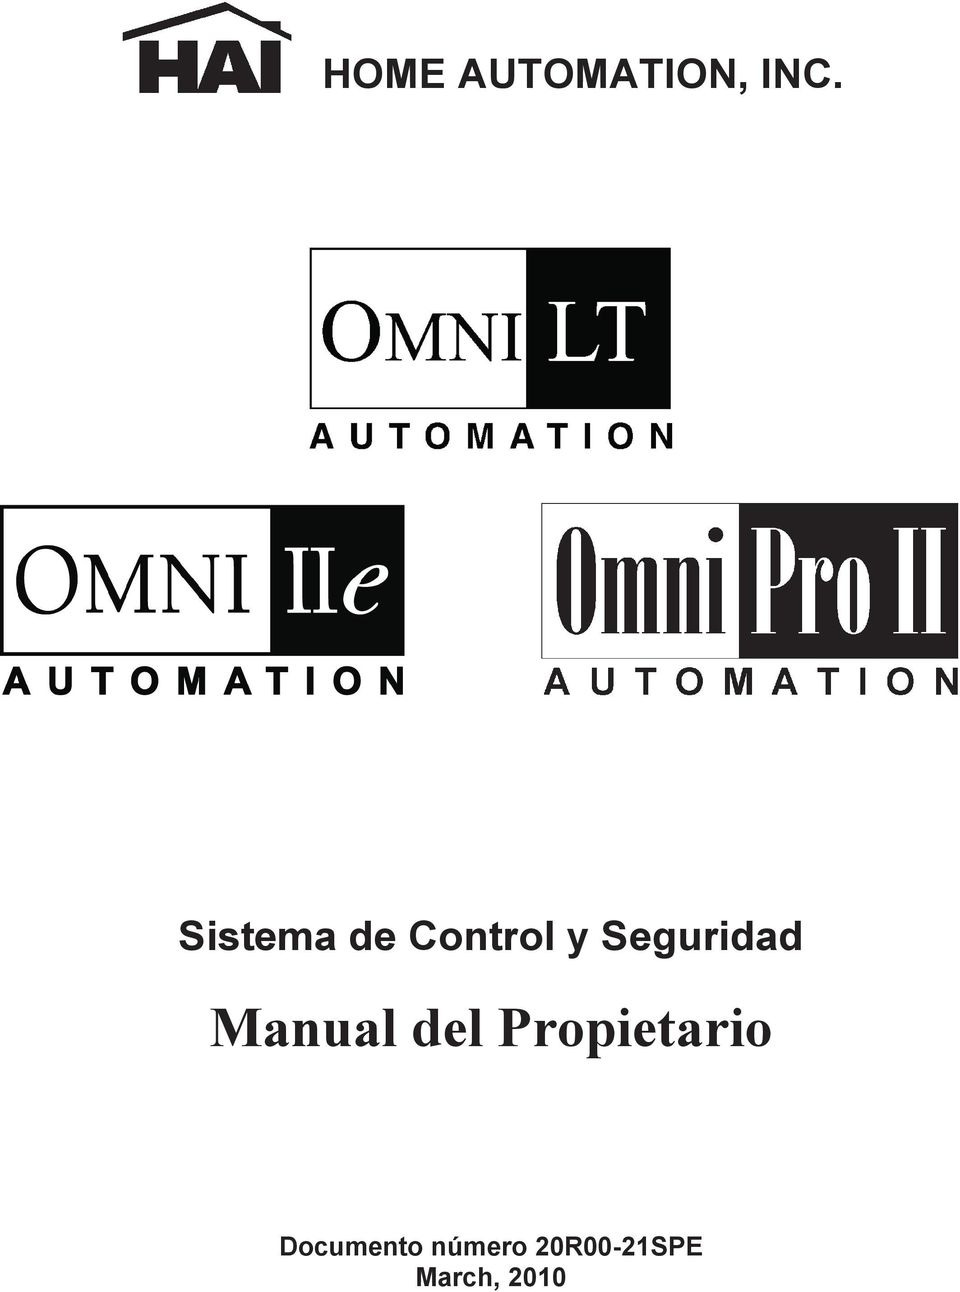 Seguridad Manual del